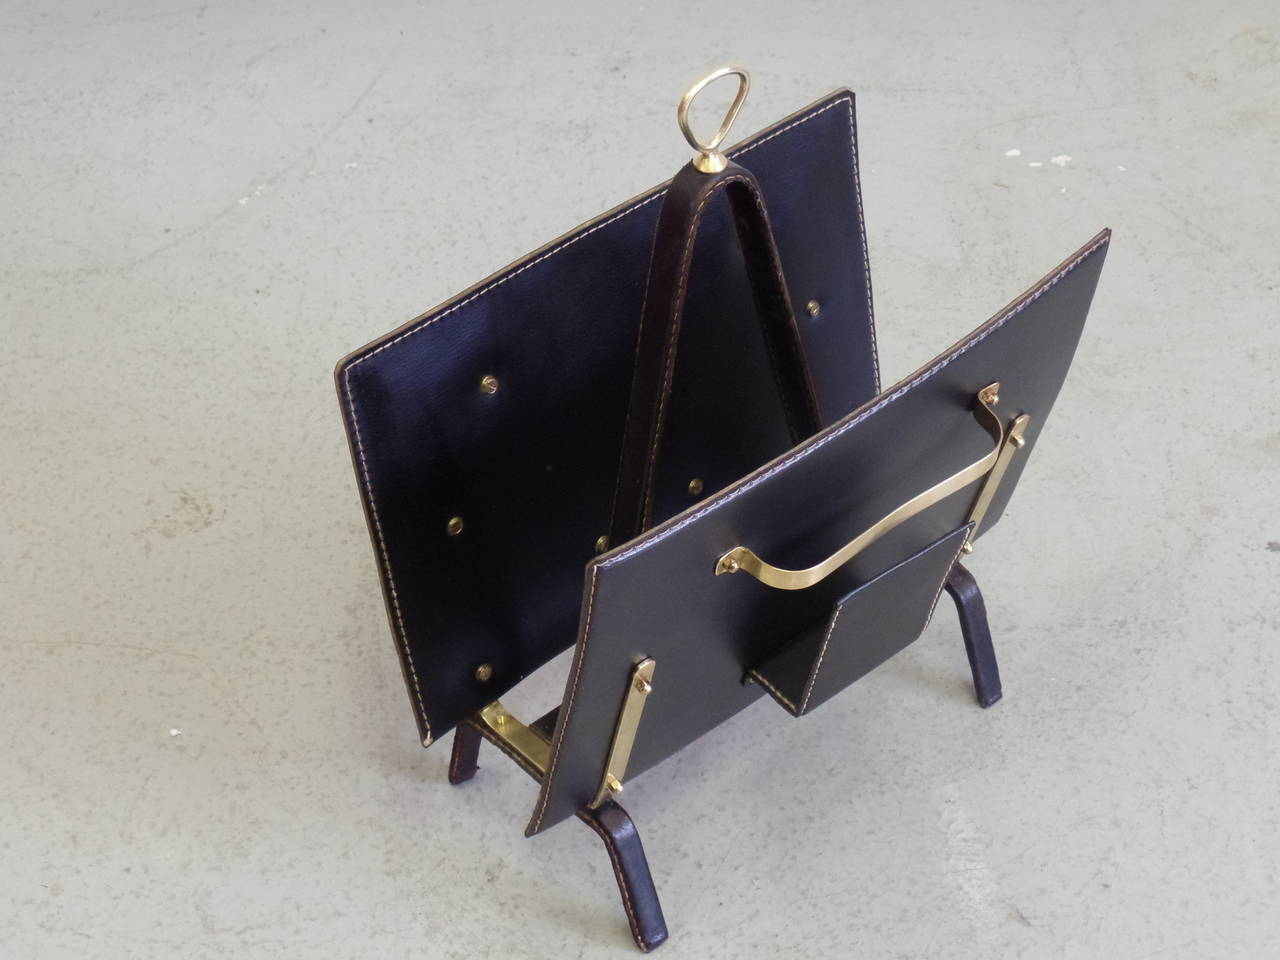 French Hand-Stitched Leather Magazine Stand by Jacques Adnet For Sale 1